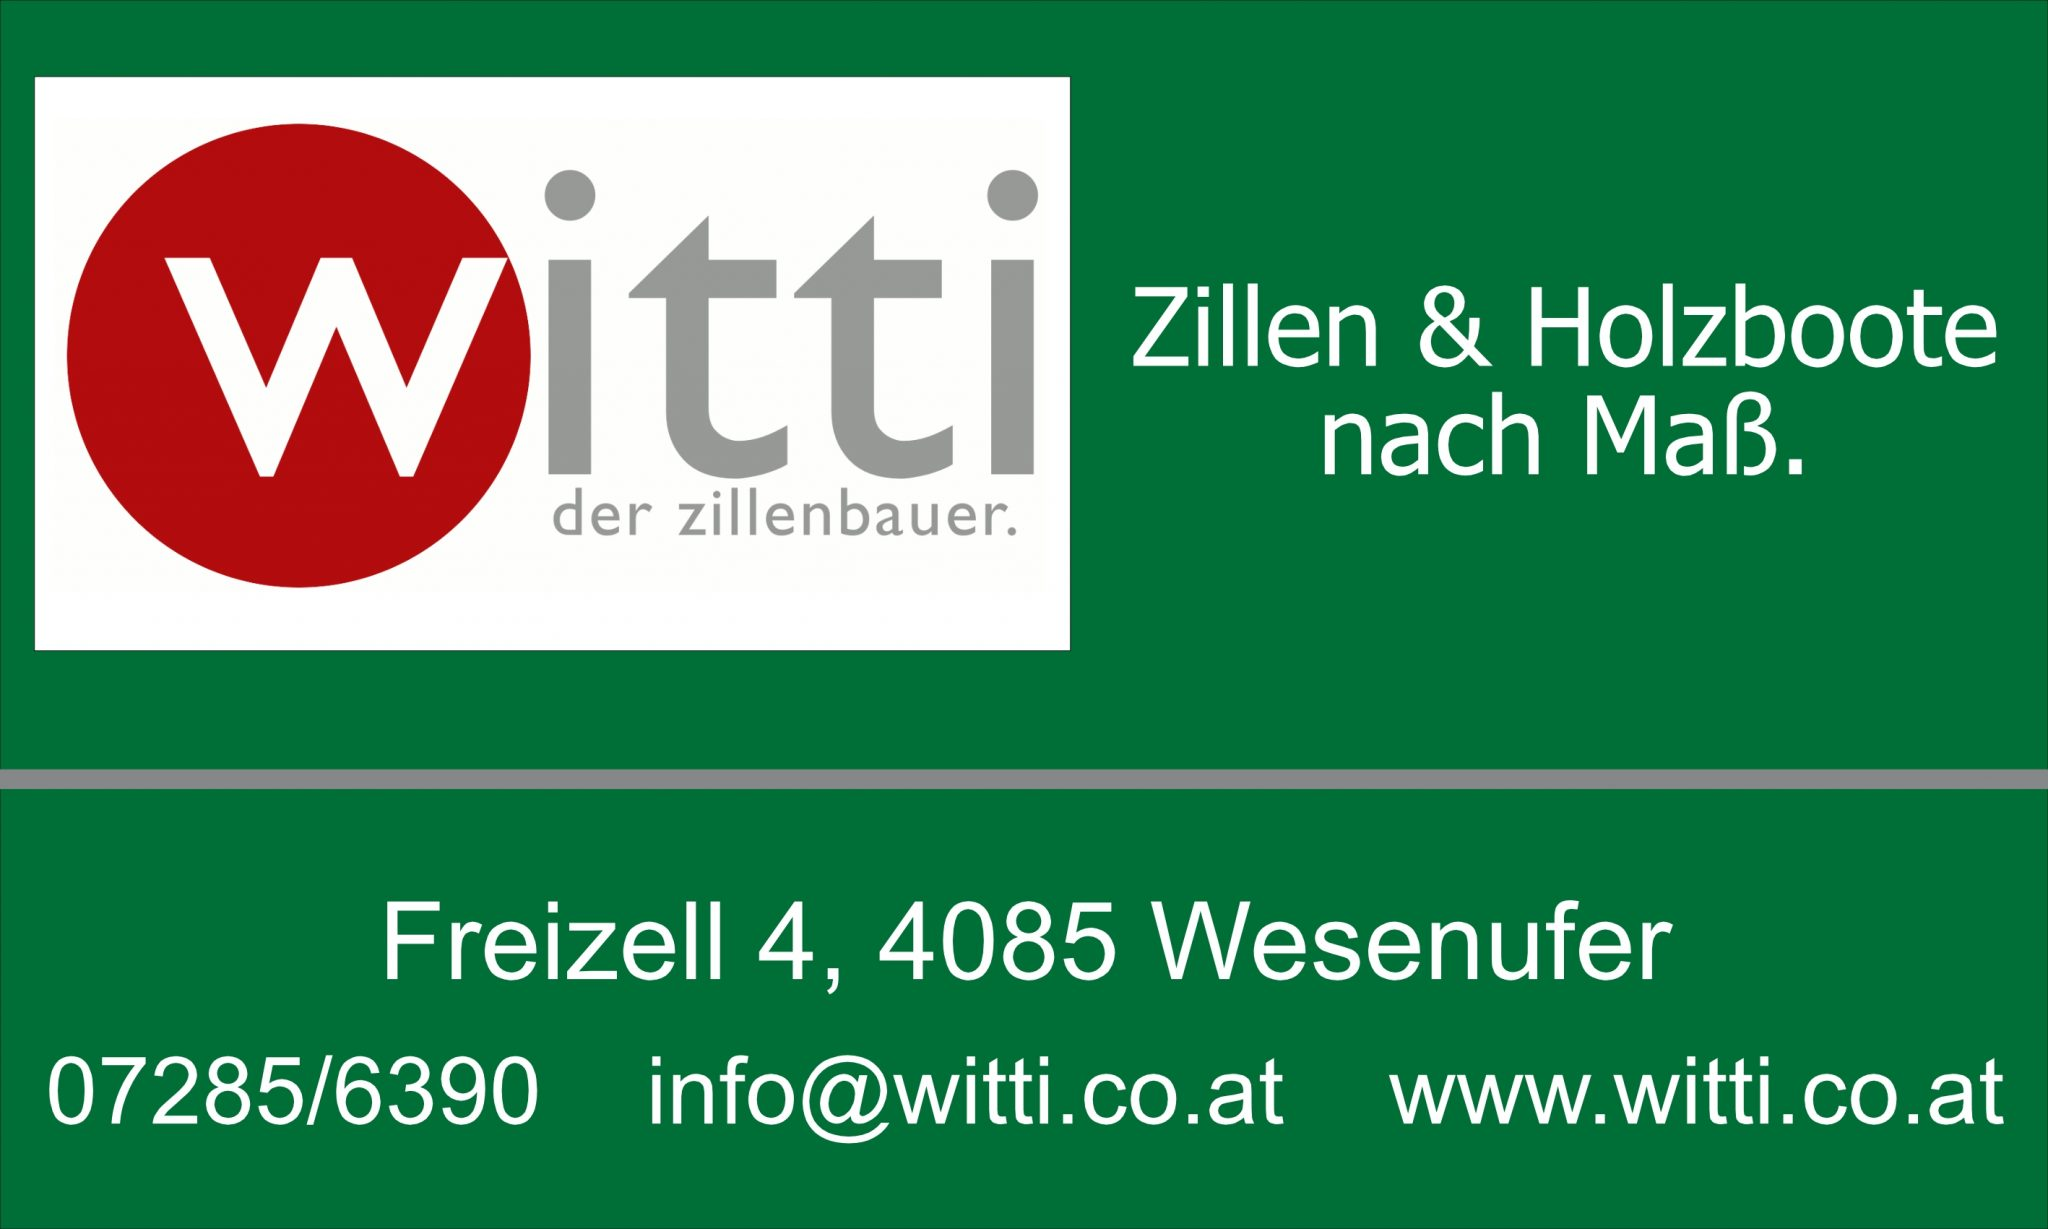 http://www.witti.co.at/